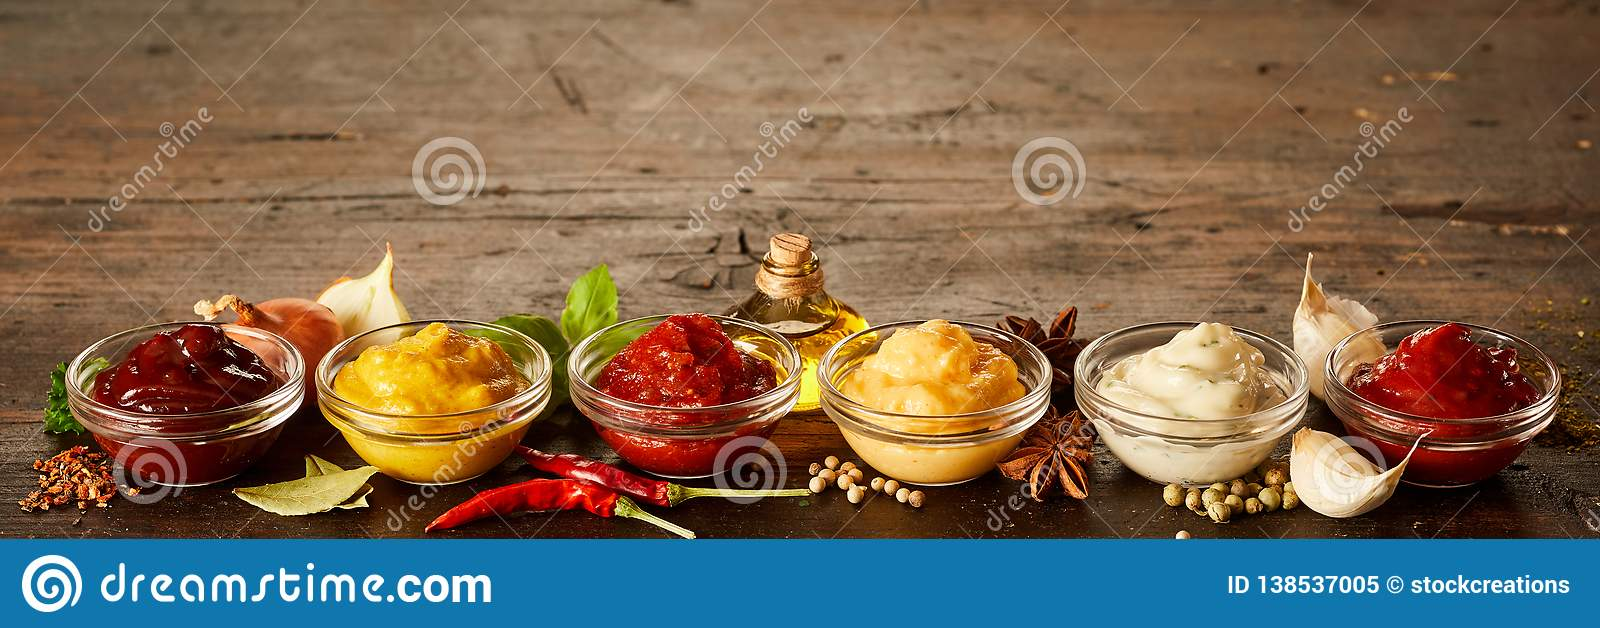 Rustic wood banner with a variety of sauces